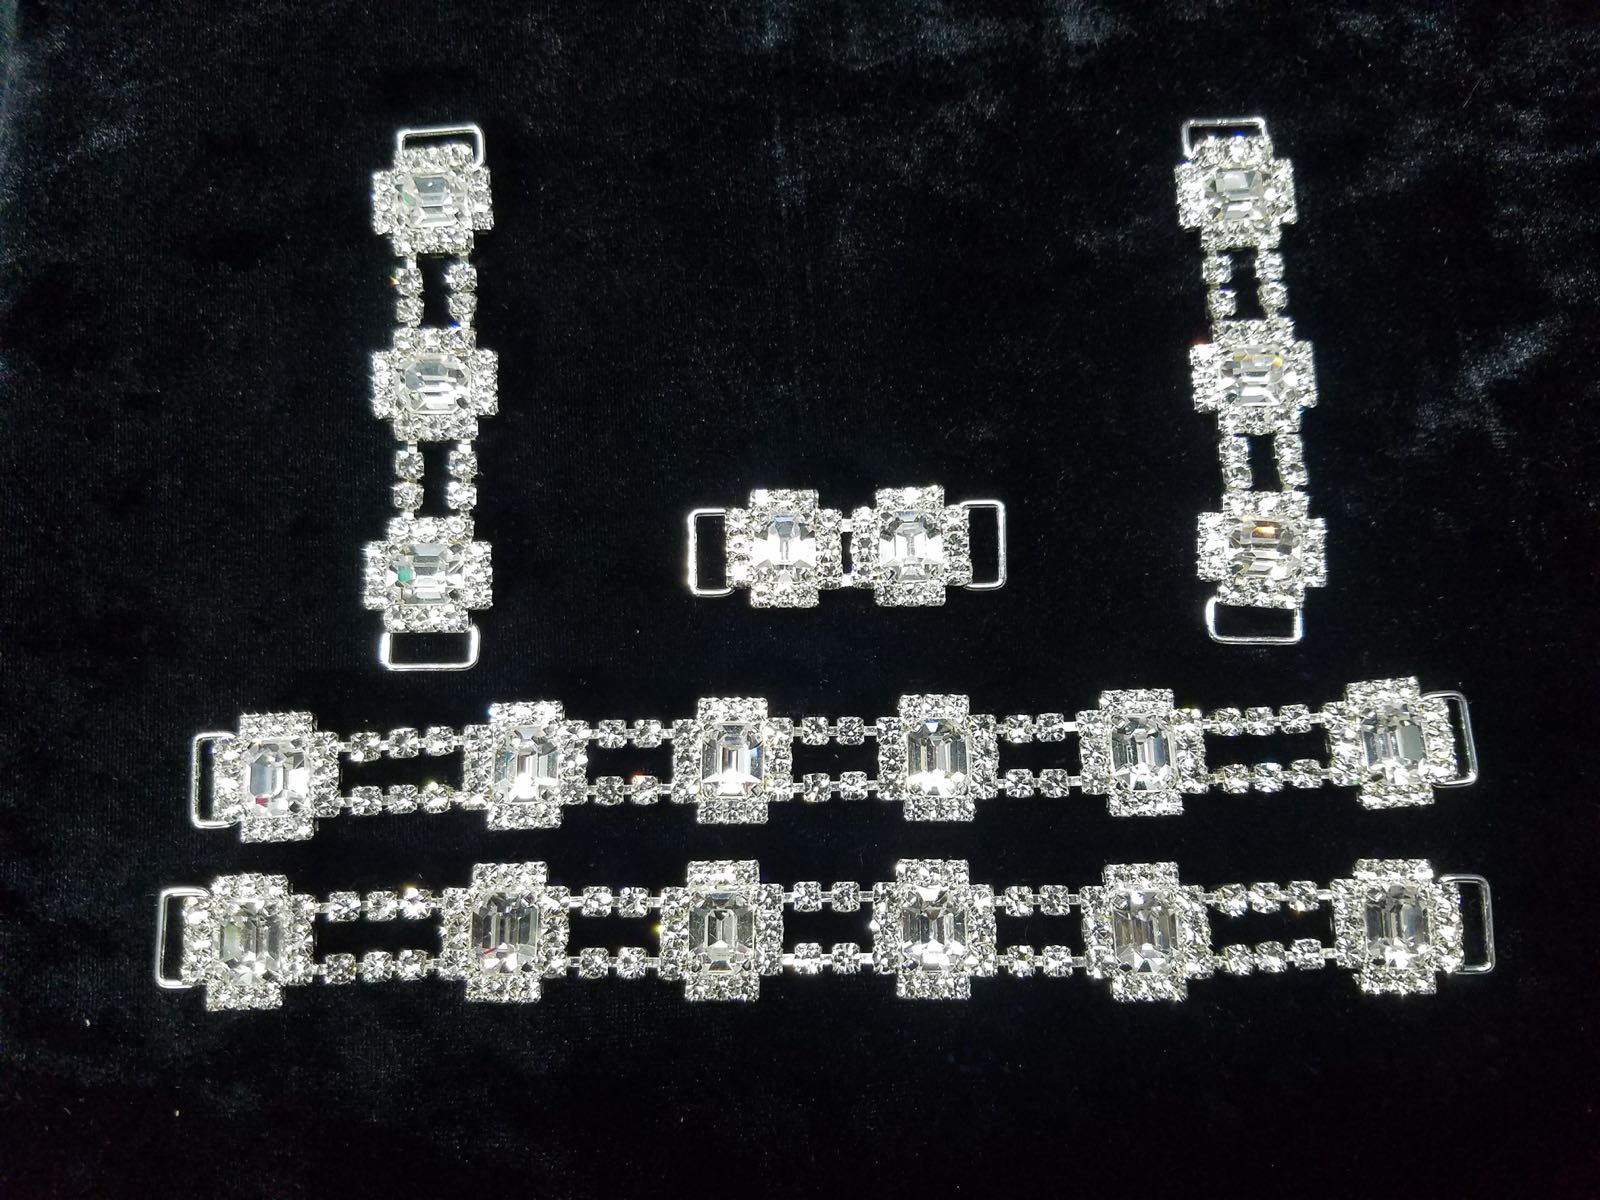 Set I, Silver with clear crystals, $85.00